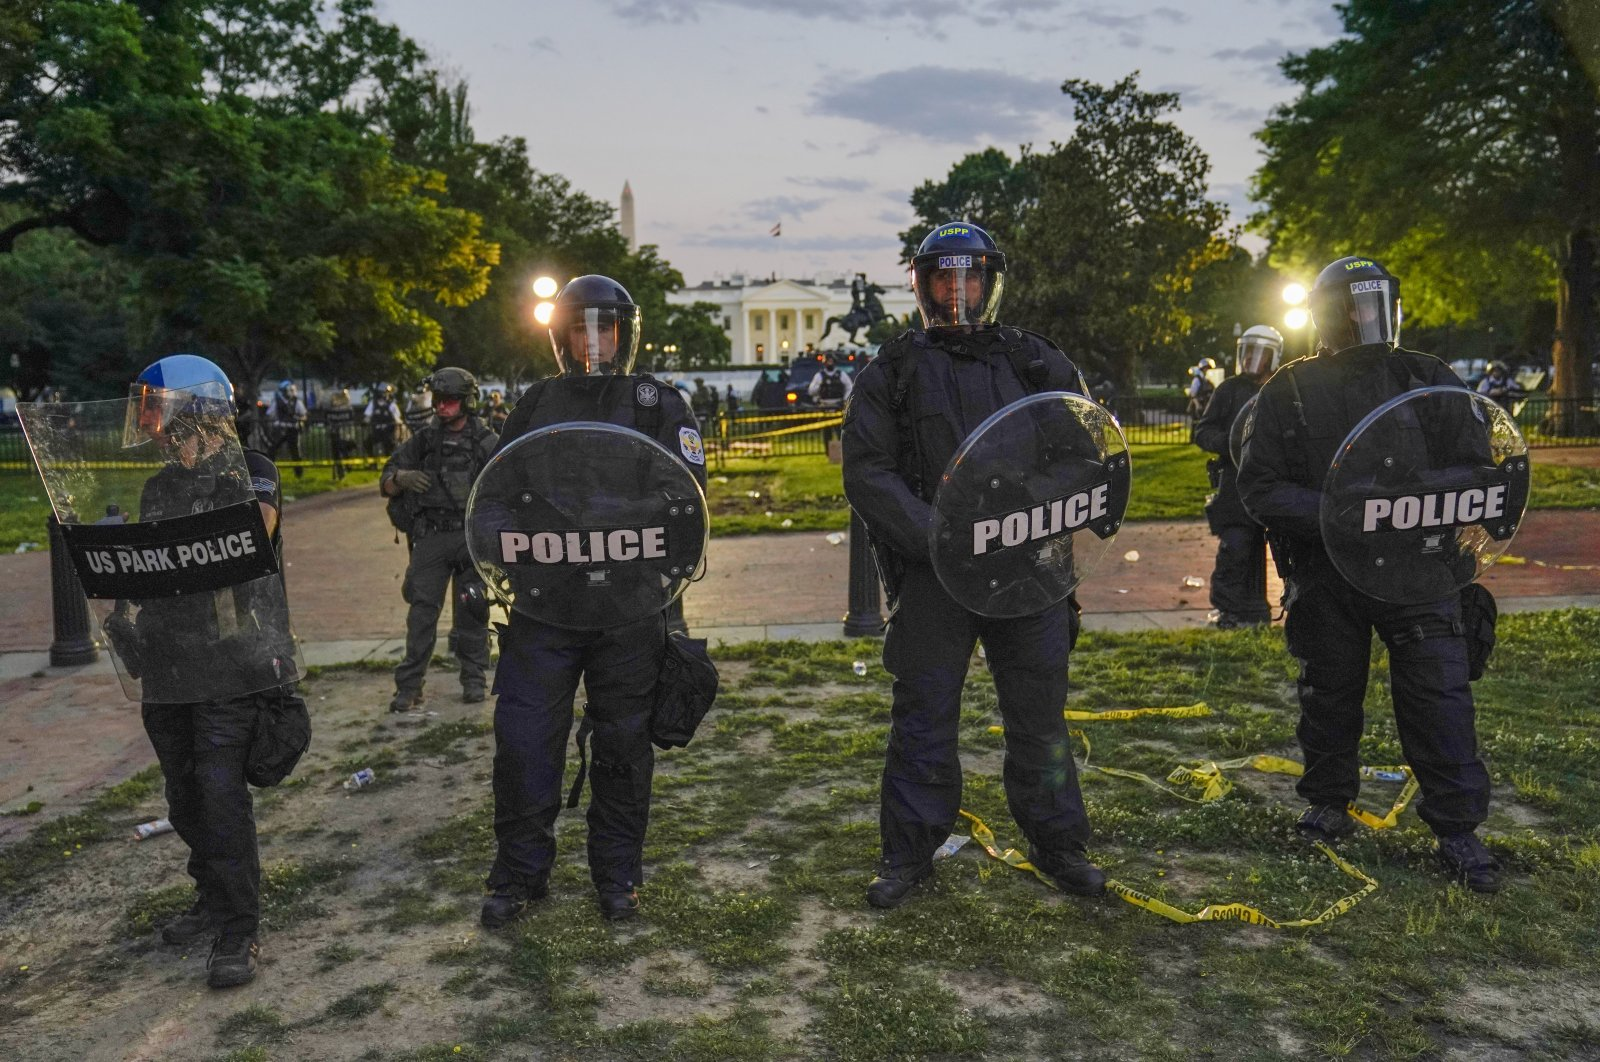 Police in riot gear stand in front of the White House as demonstrators gather to protest the death of George Floyd, Saturday, May 30, 2020, outside the White House in Washington. (AP Photo)